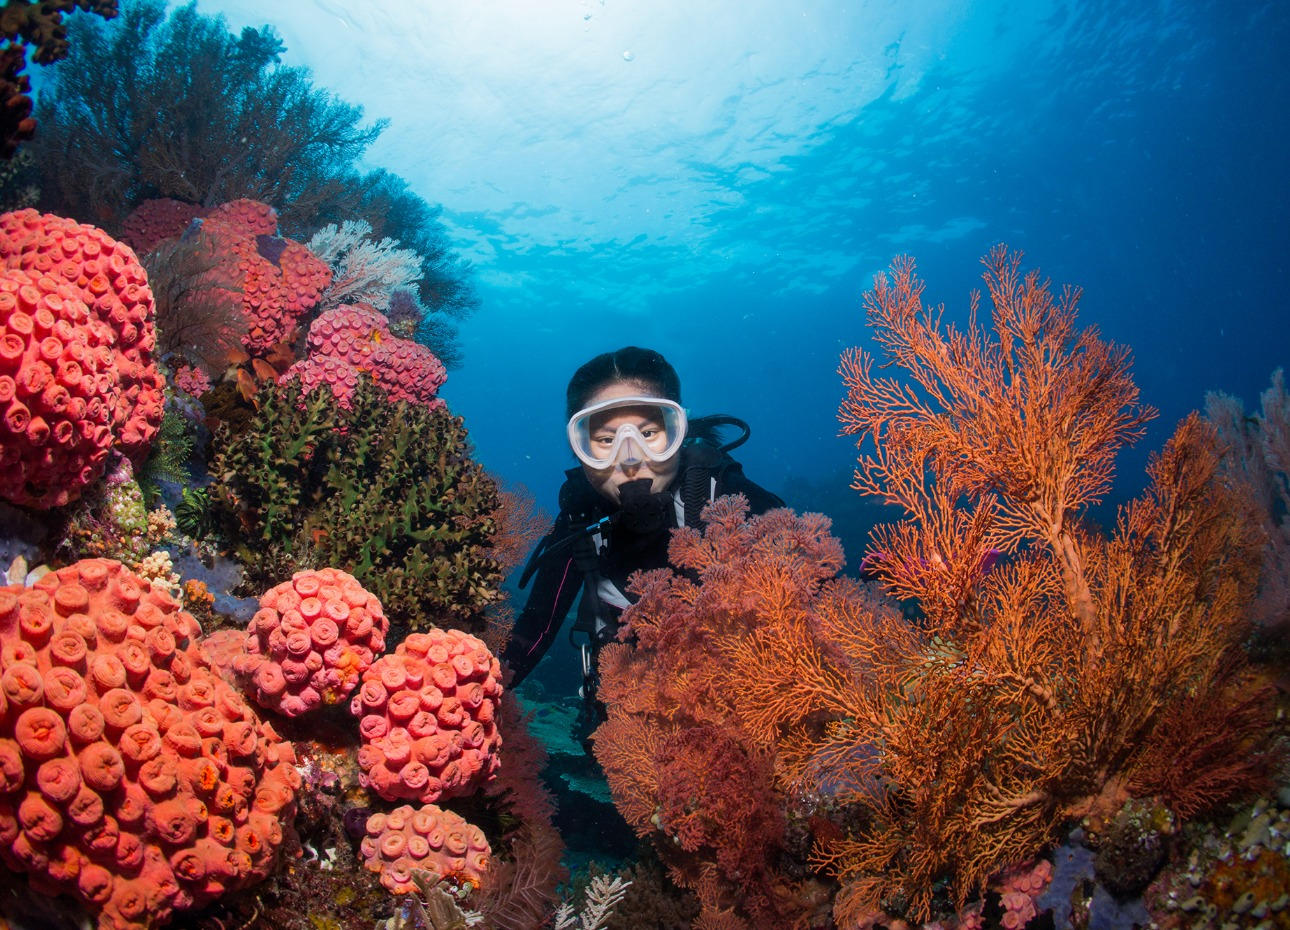 Scuba diver peering between hard and soft coral formations in Raja Ampat, Indonesia